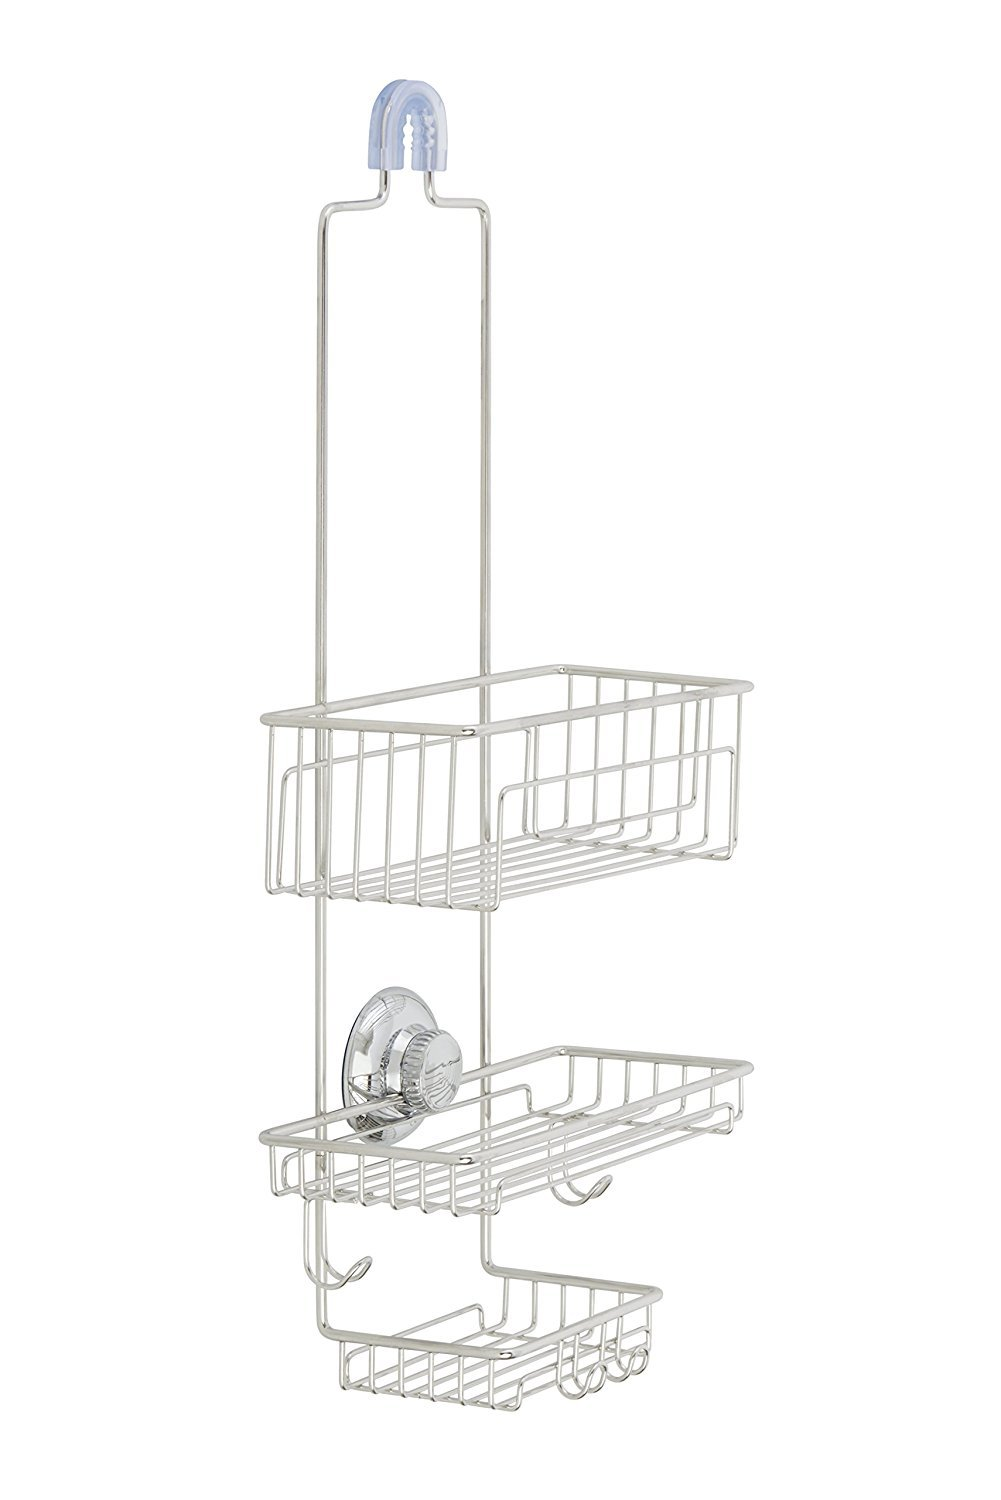 Gecko-Loc Over the Shower Head Tall Shower Caddy Organizer with Super Suction Cup & Shower Head Hanger - Stainless Steel Rustproof Pinnacle Brands SHS-015